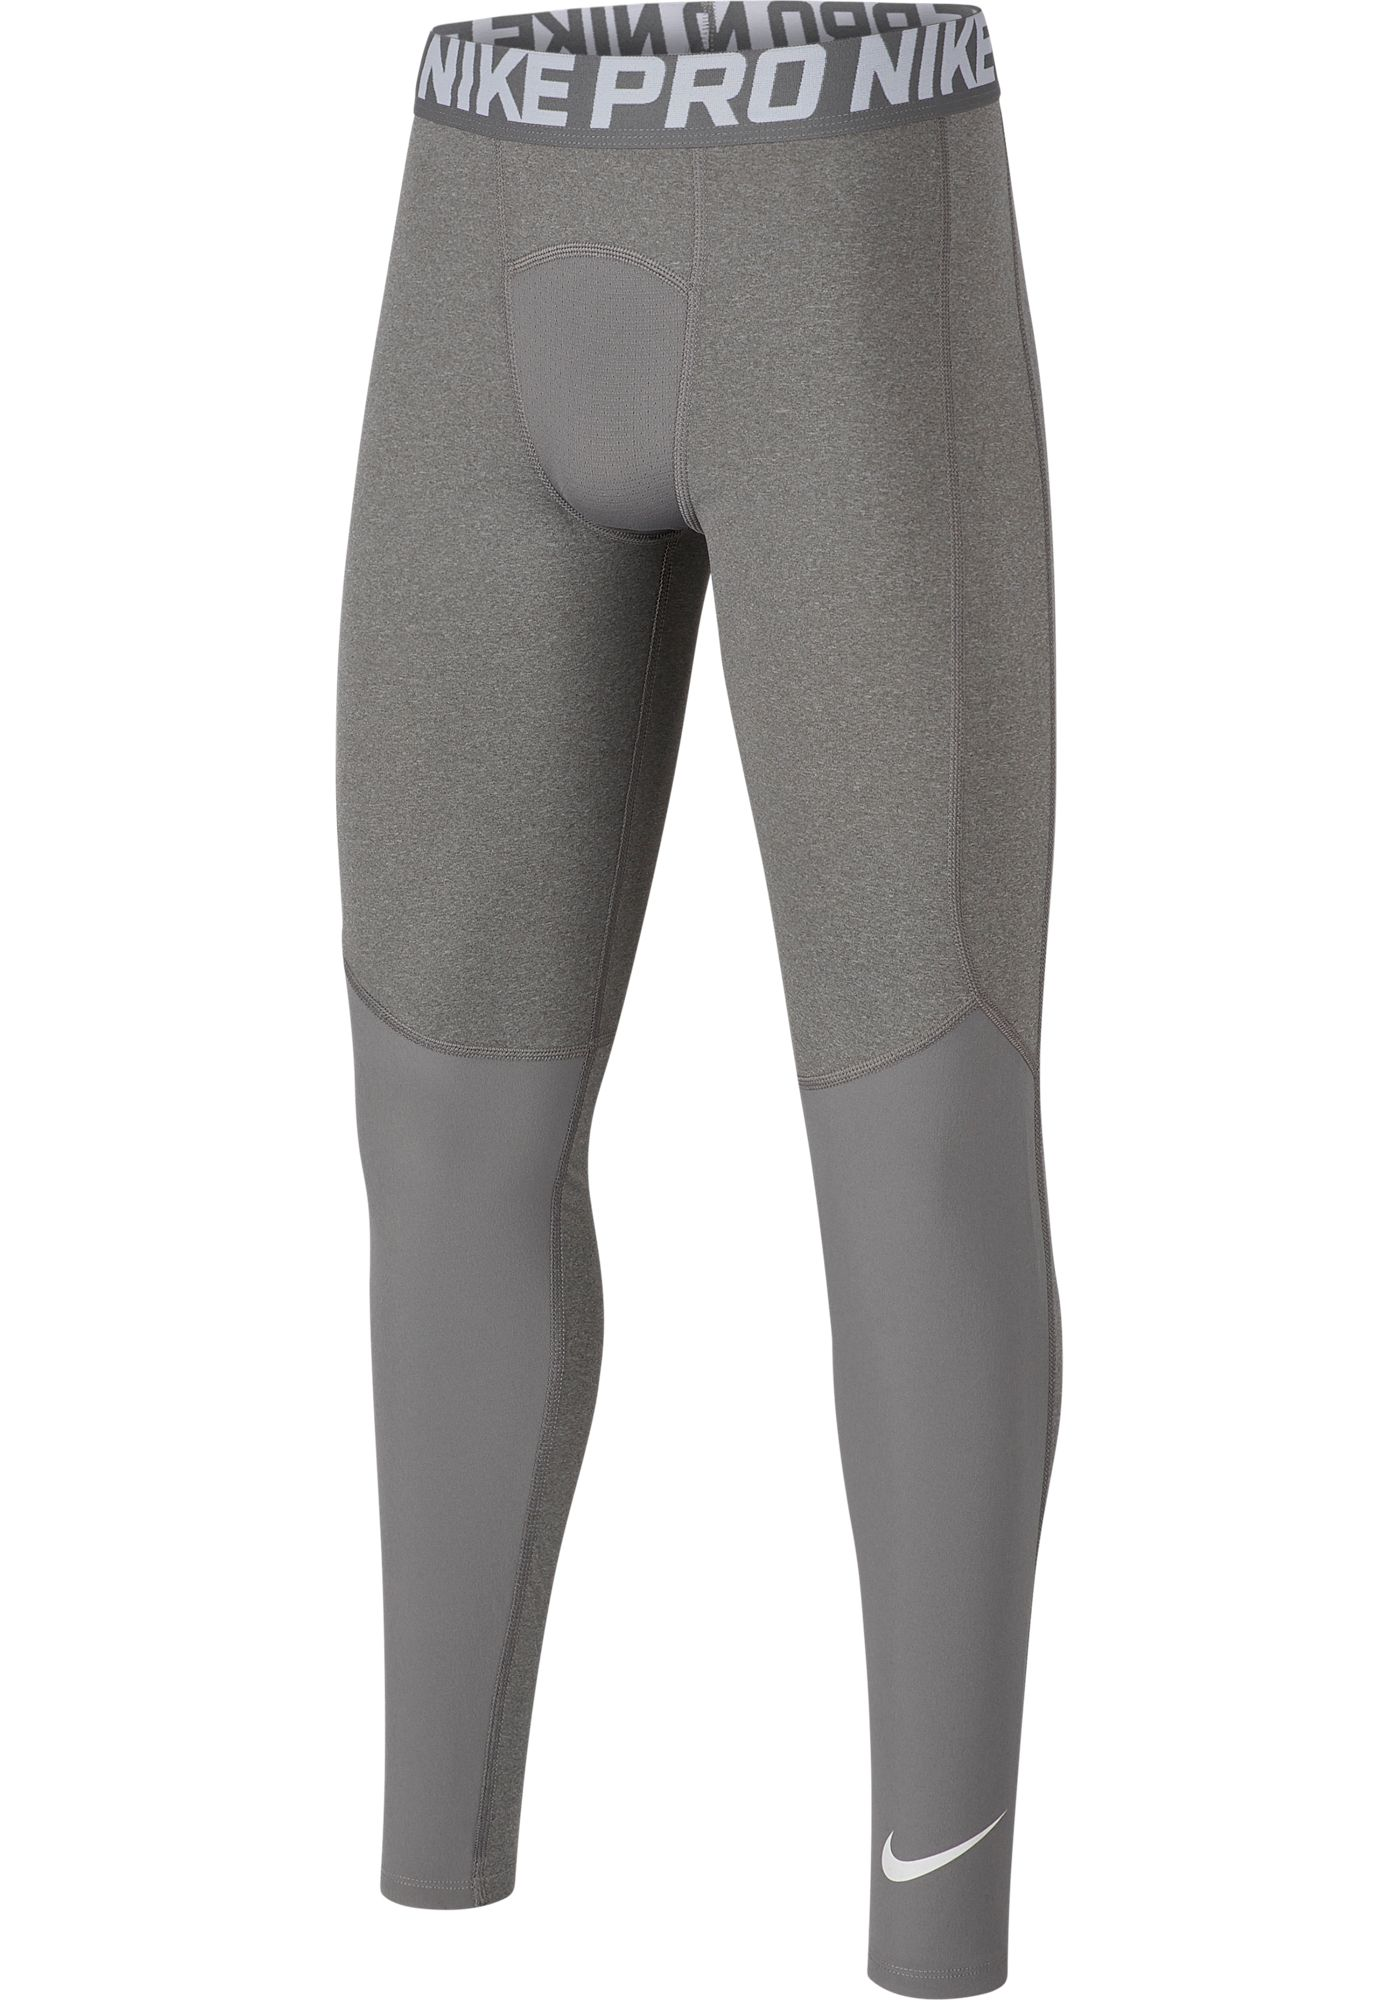 Nike Boys' Dri-FIT Pro Tights